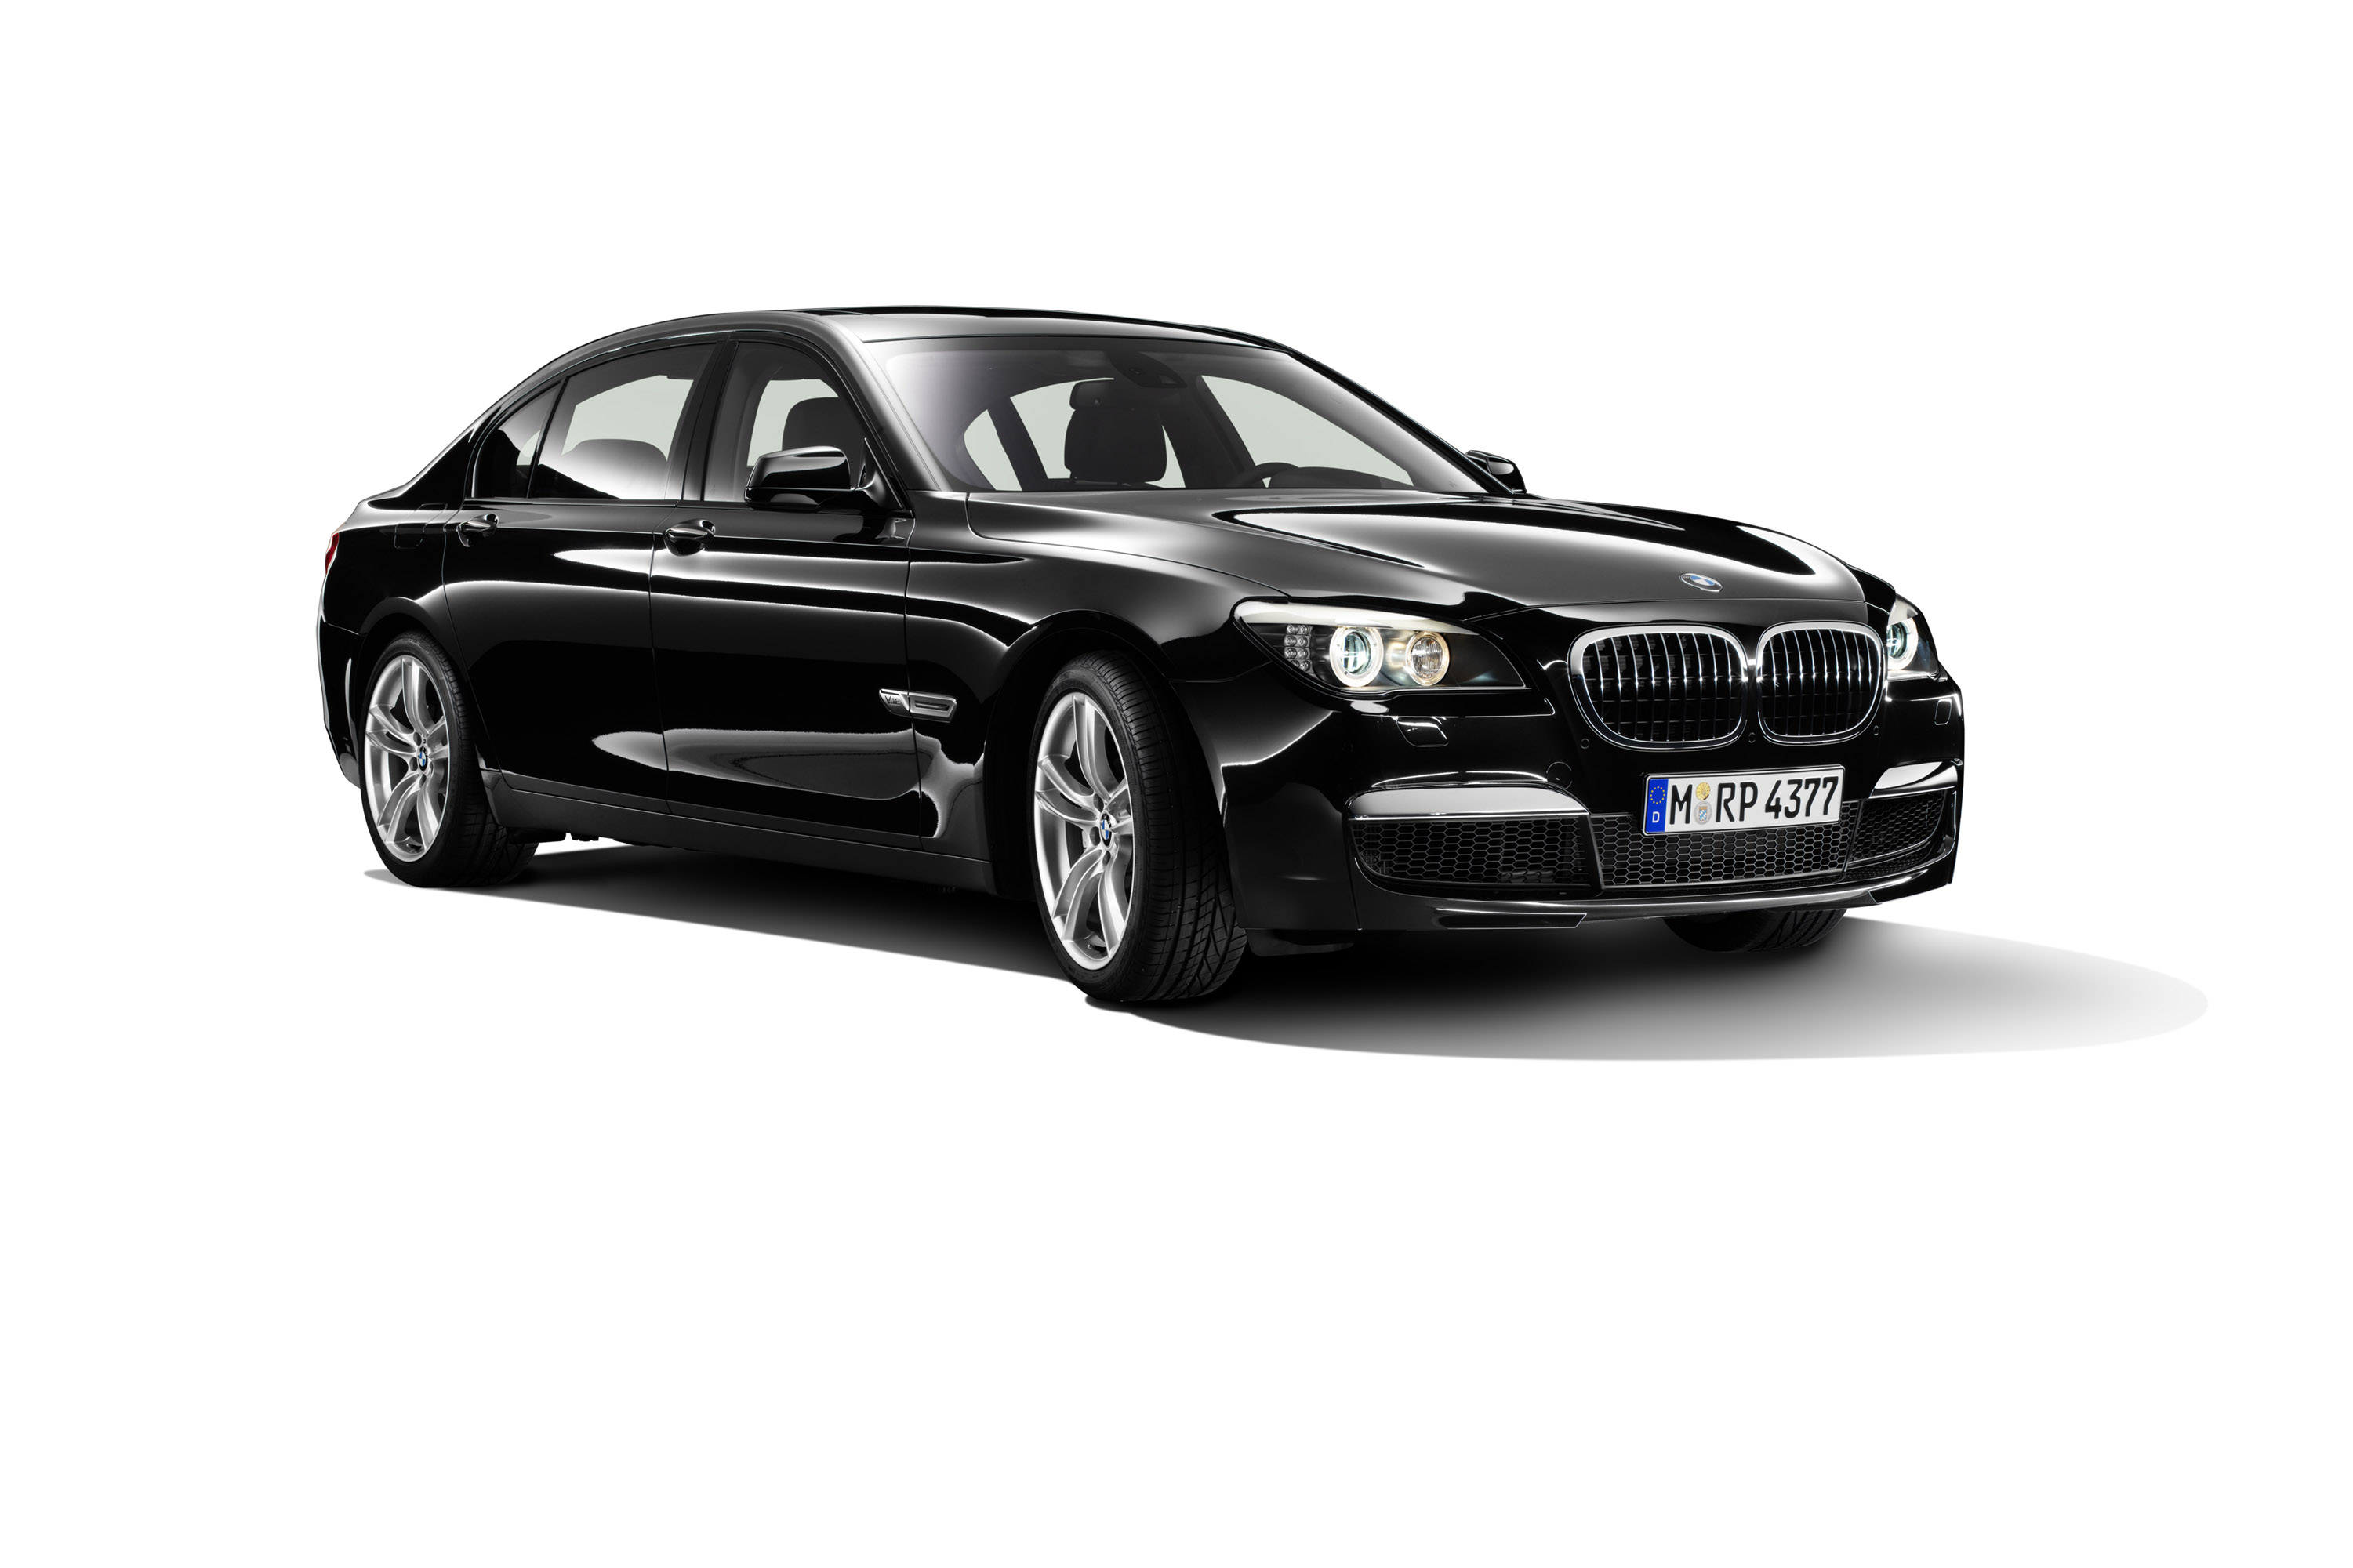 bmw 7 series luxury edition price 58 920. Black Bedroom Furniture Sets. Home Design Ideas